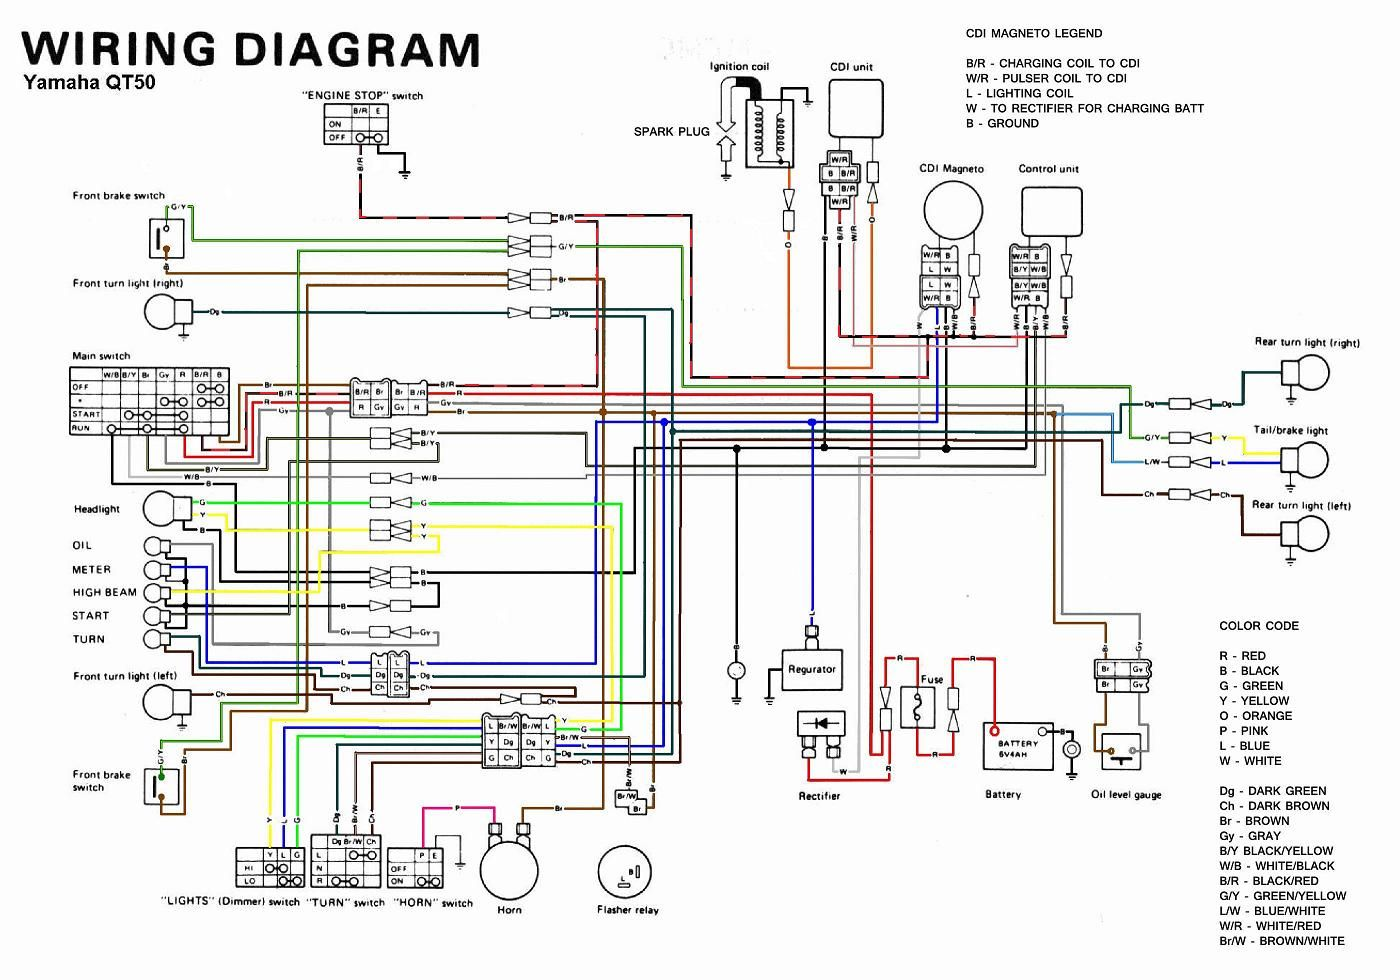 medium resolution of 1981 yamaha wiring code wiring diagram features 1981 yamaha xj550 wiring diagram 1981 yamaha wiring code